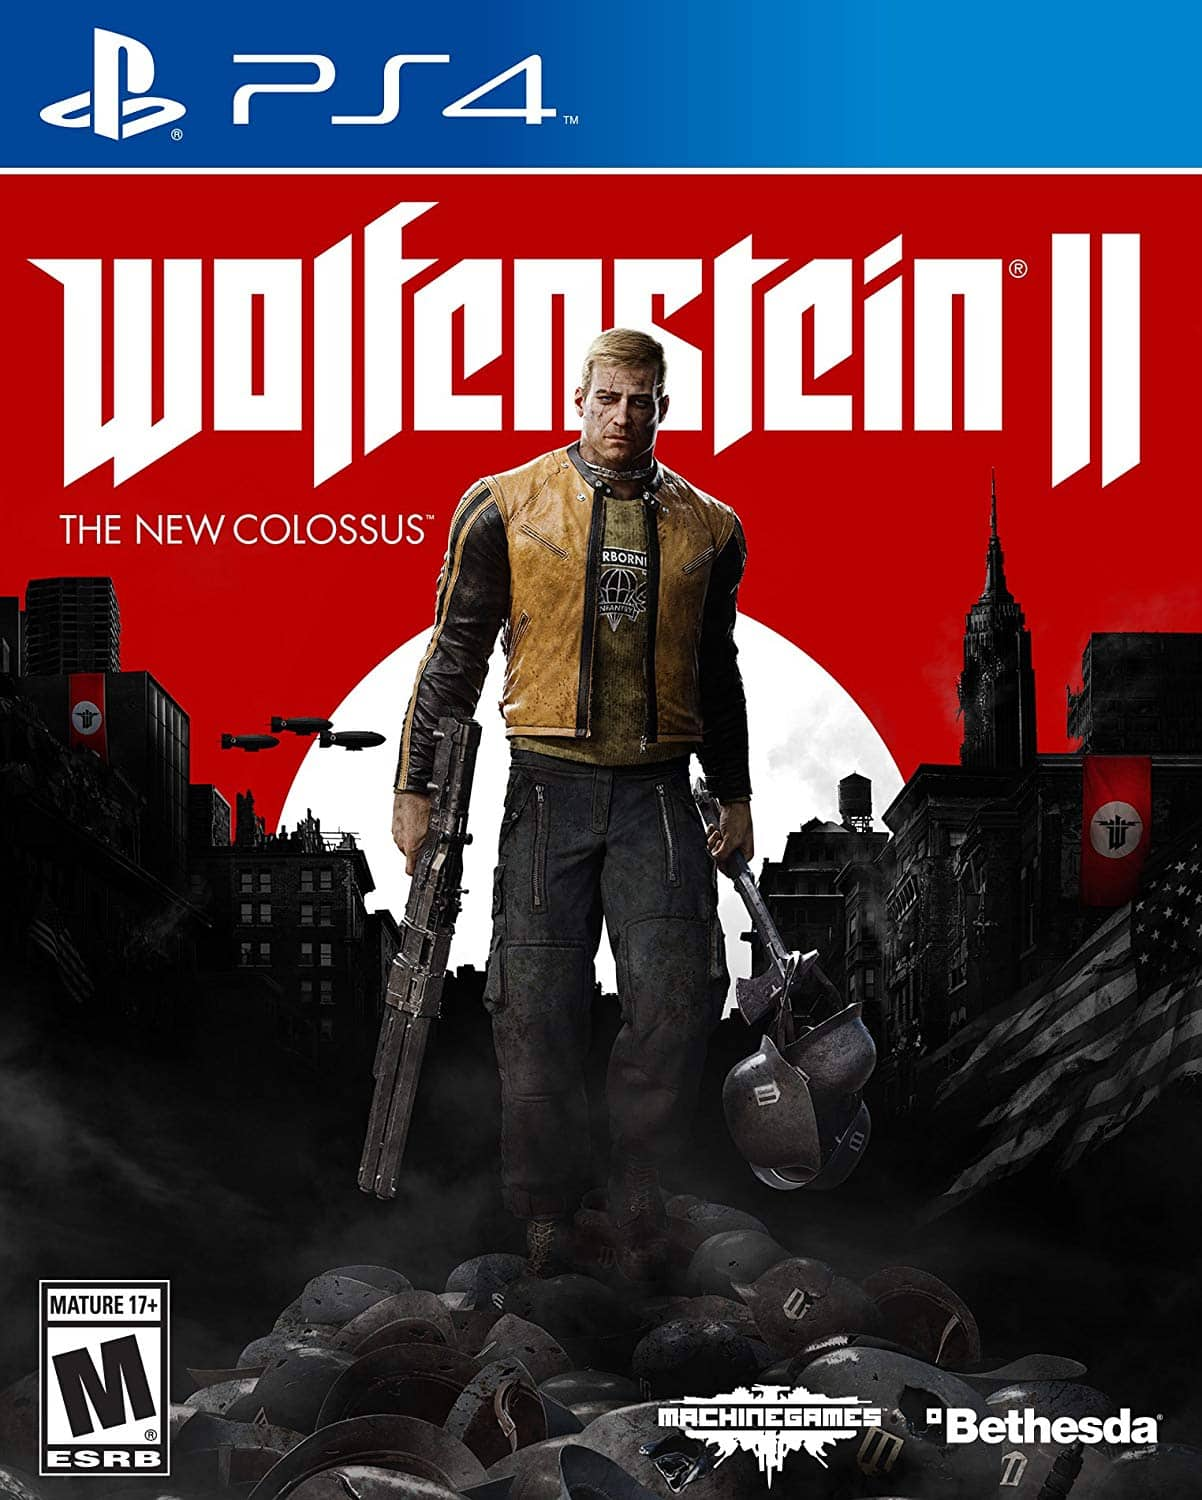 Wolfenstein II: The New Colossus - PlayStation 4 [Disc, Standard, PlayStation 4] $20